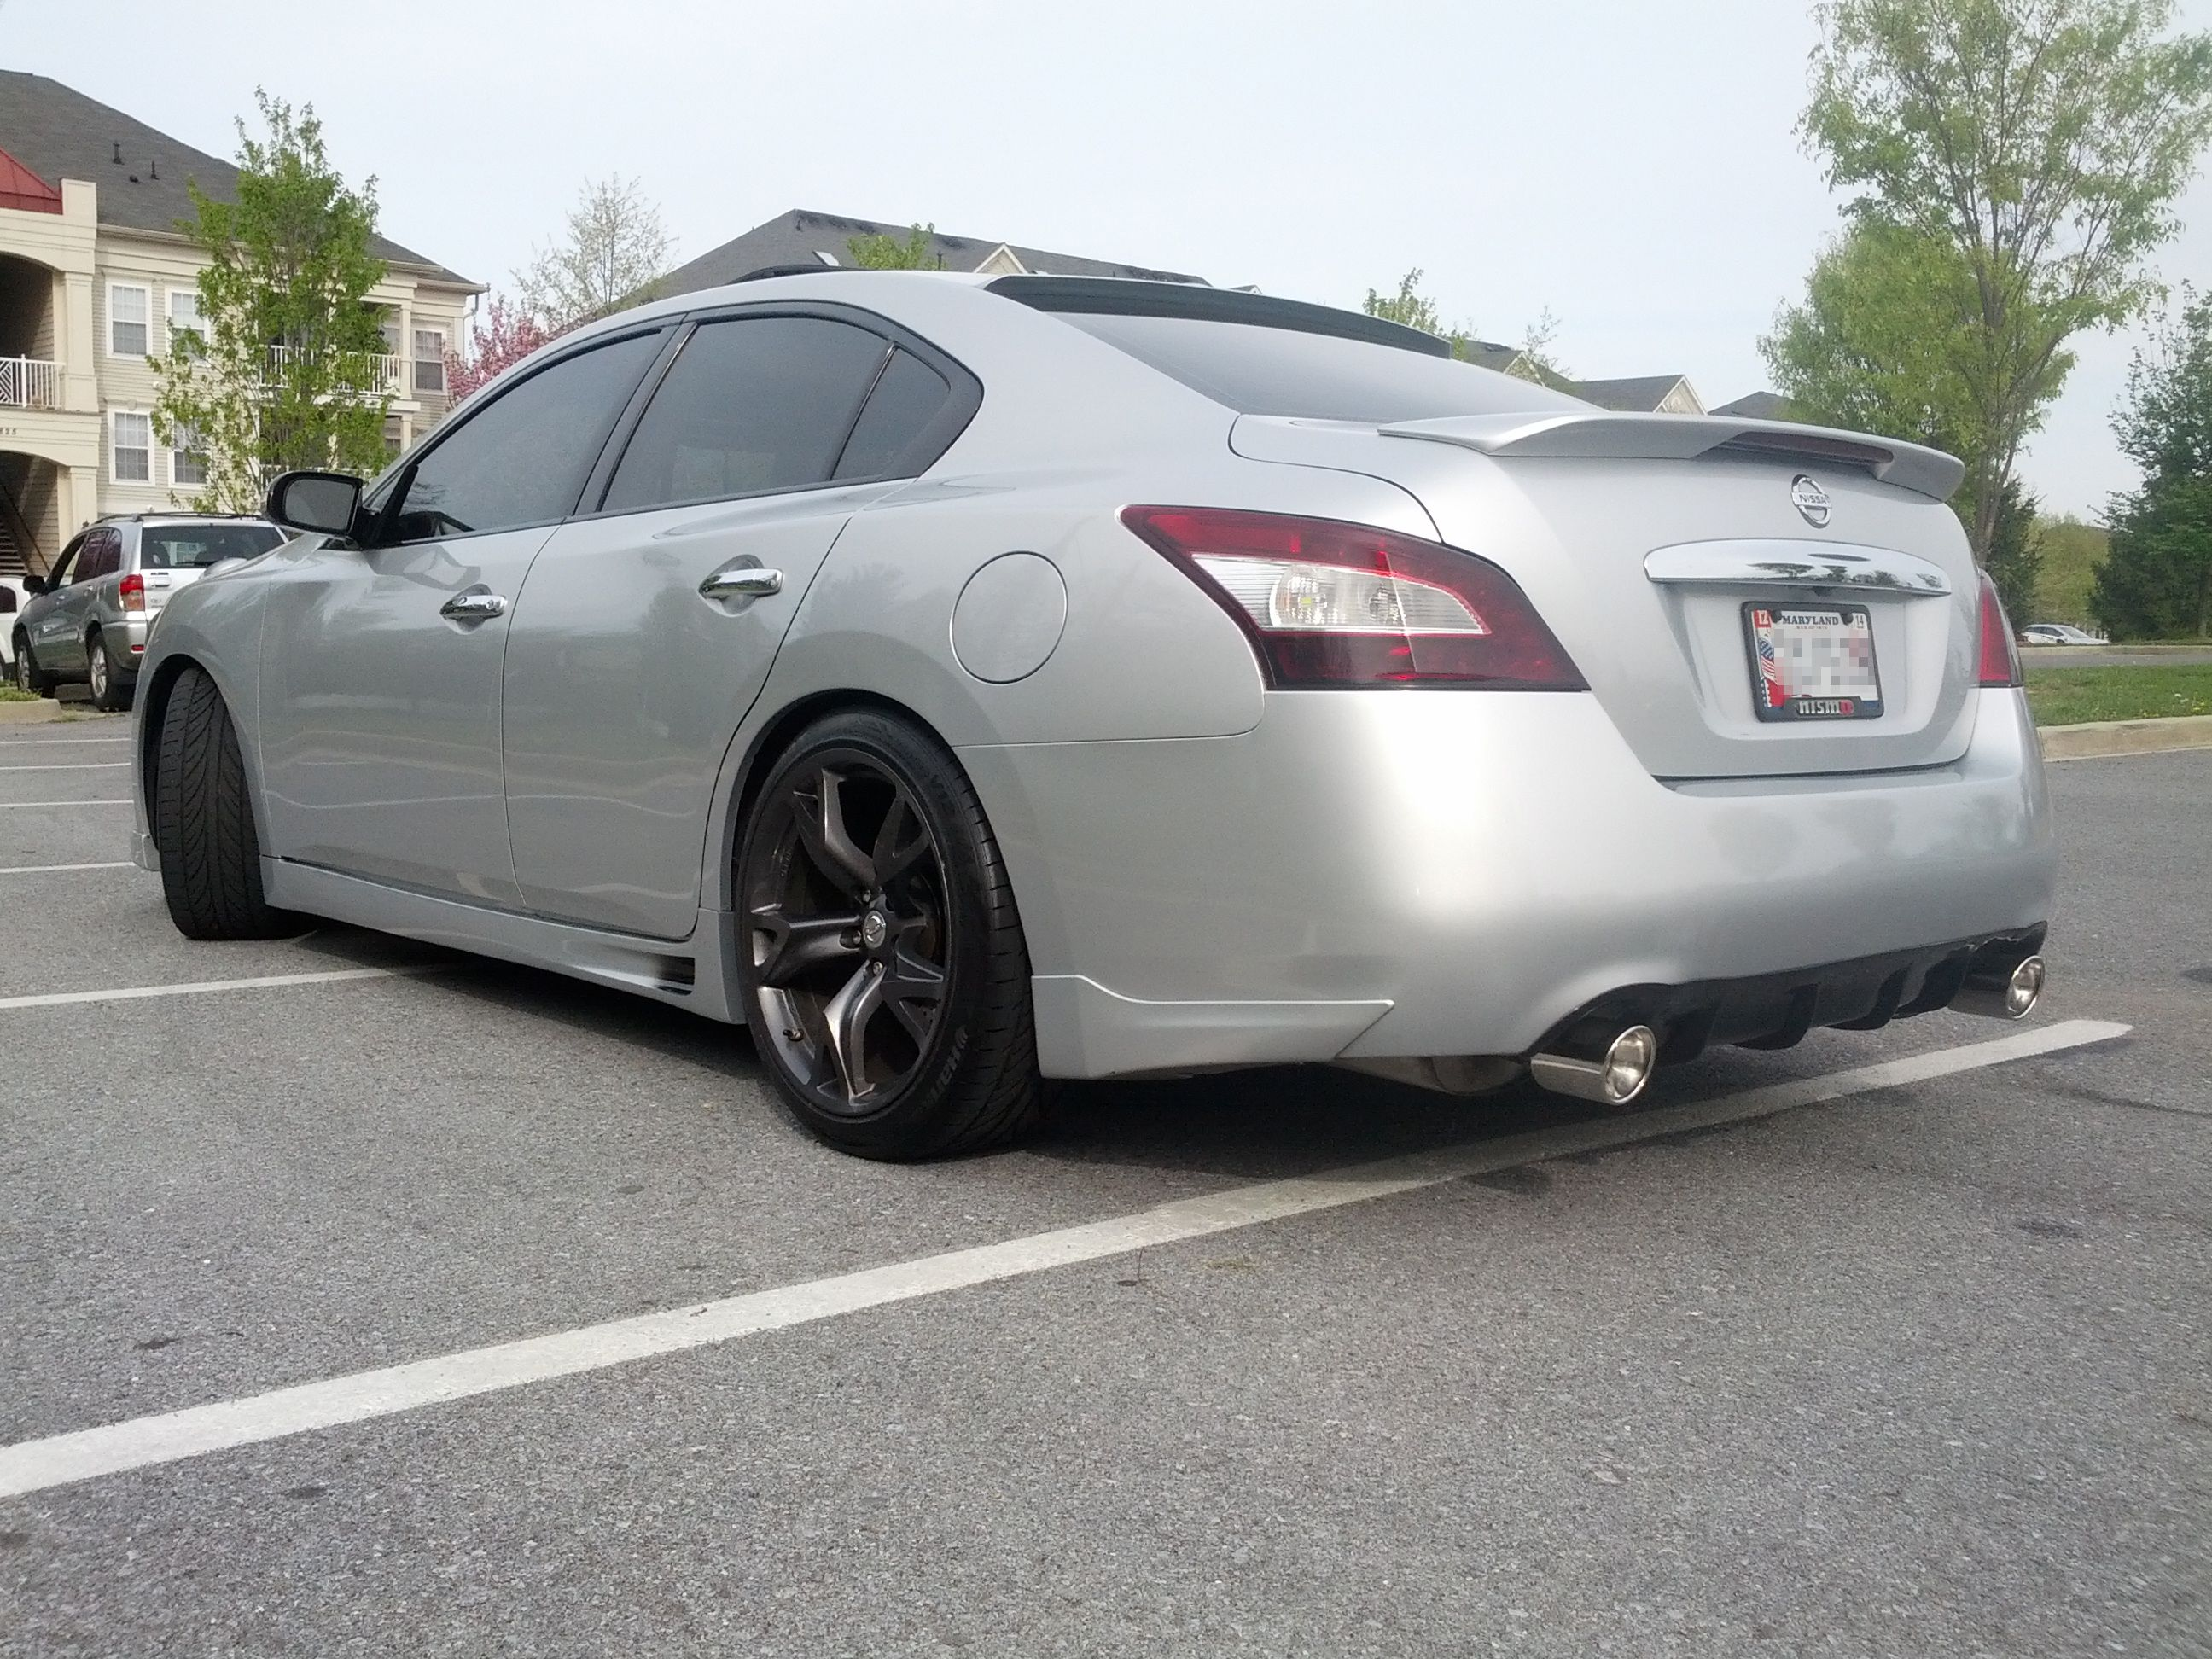 Customized Nissan Maxima Google Search Stuff To Buy